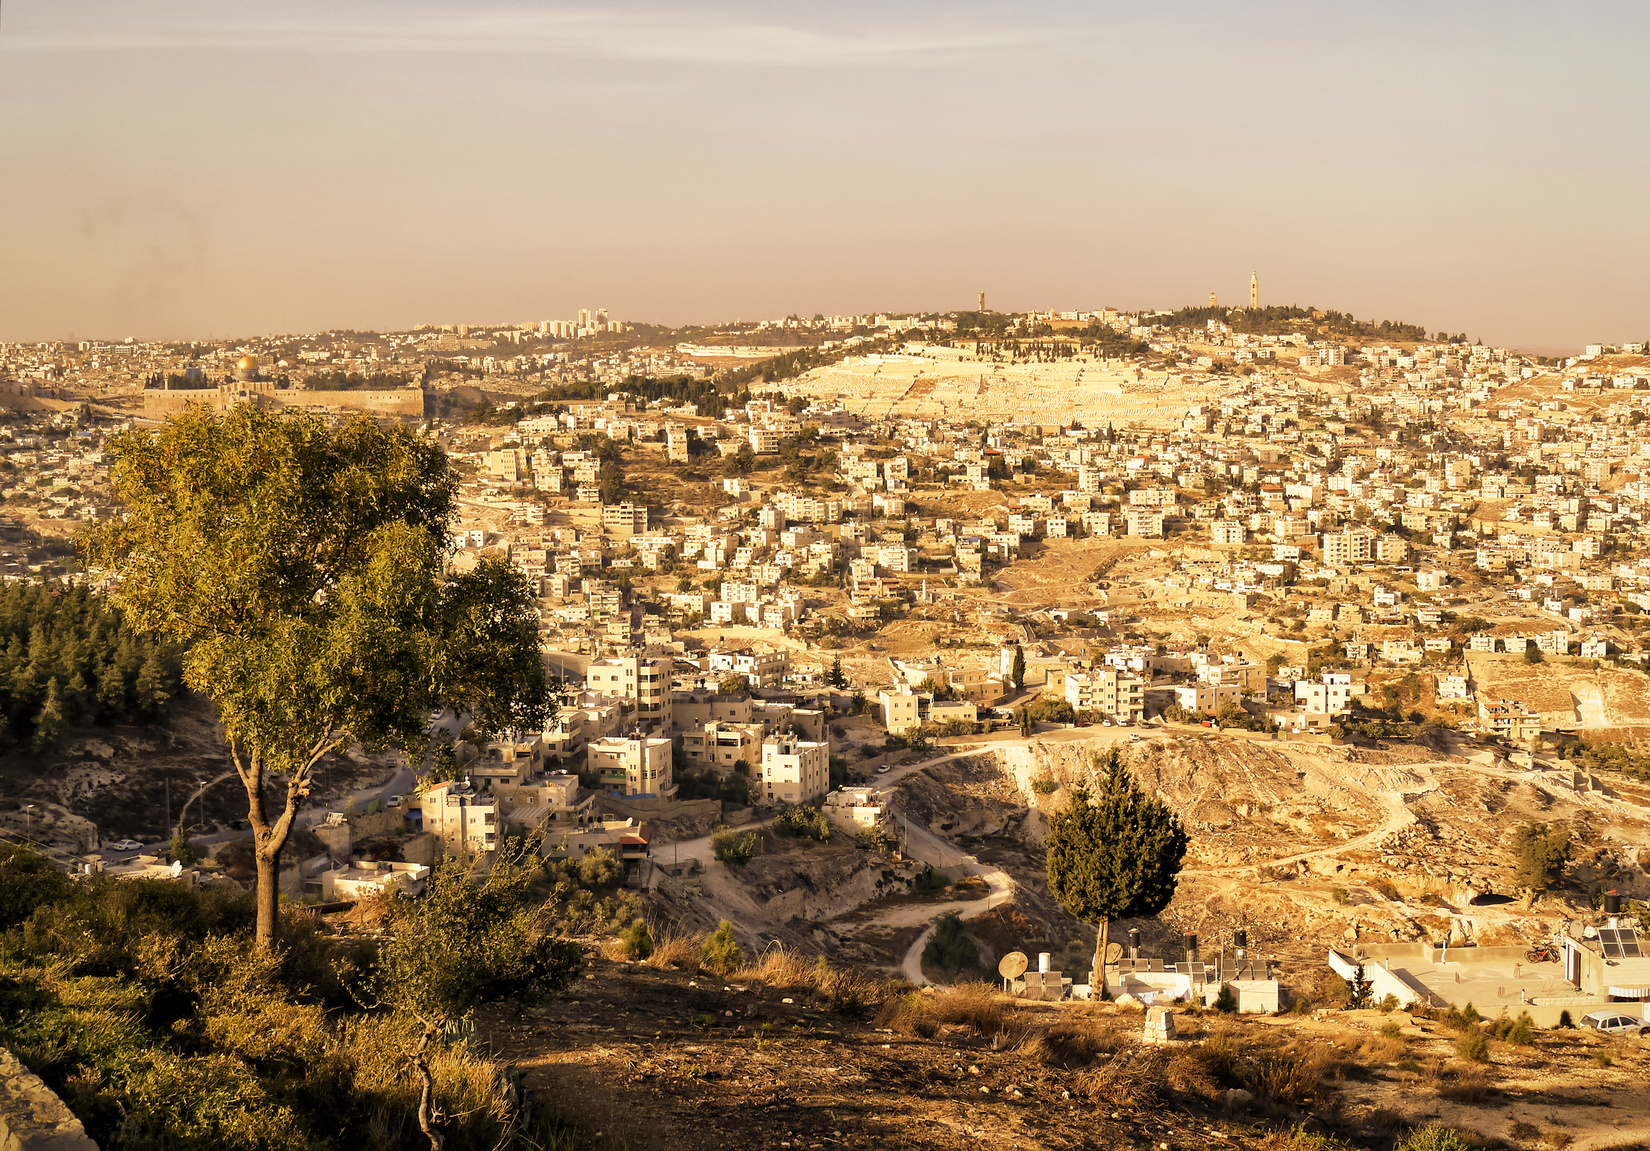 View of the Jerusalem, Old City and Mount of Olives